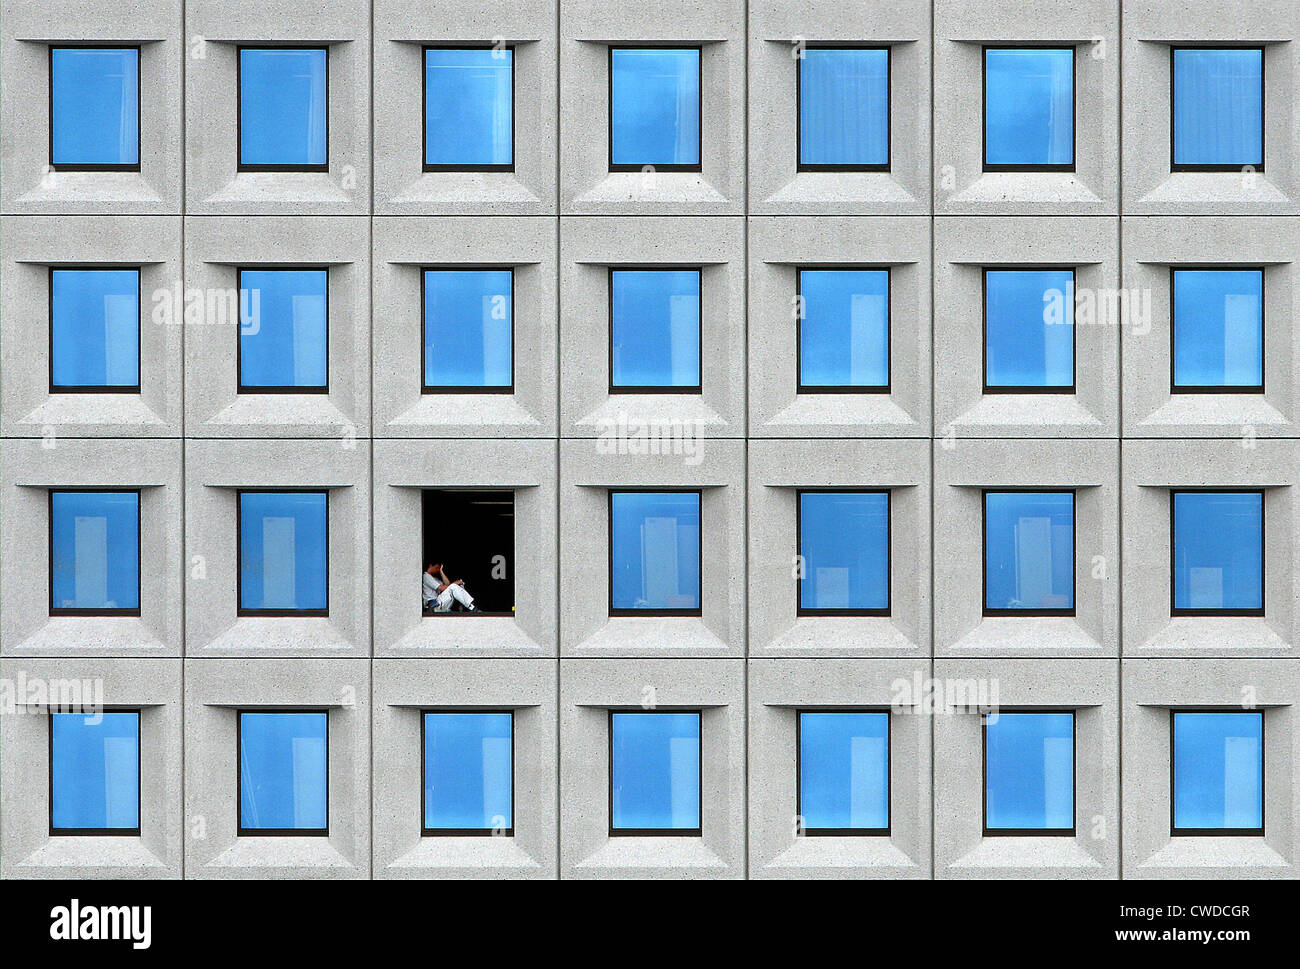 architecture,solitude,loneliness,relaxation,recreation,window,lunch break - Stock Image